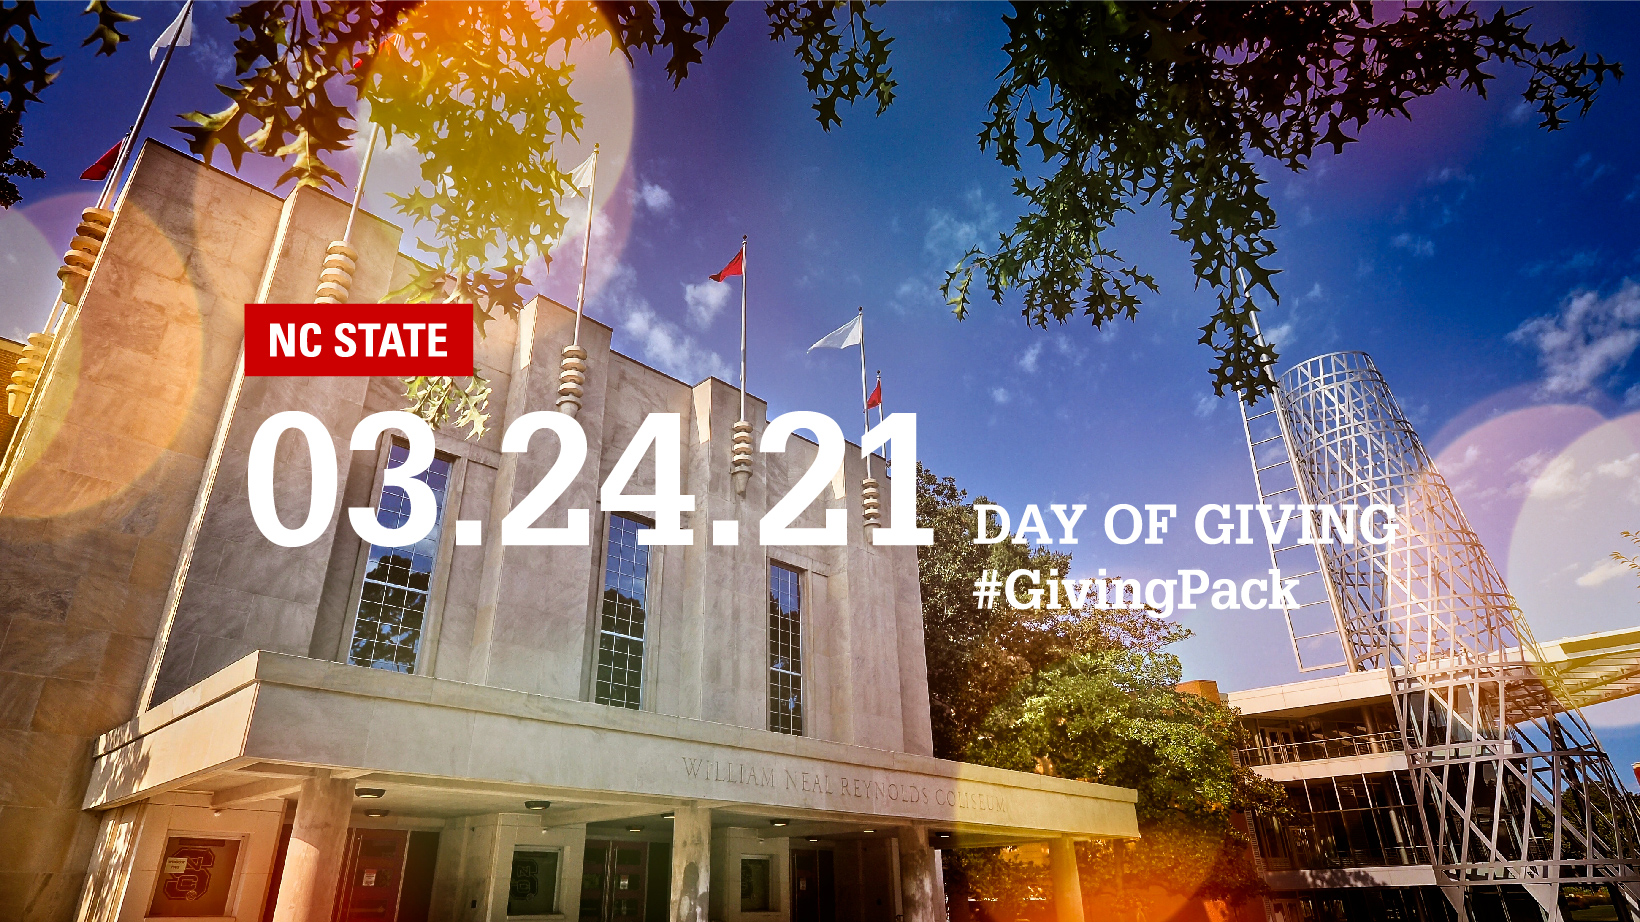 Facebook cover photo with image of Reynolds Coliseum and text reading NC State 03.24.21 Day of Giving Hashtag Giving Pack